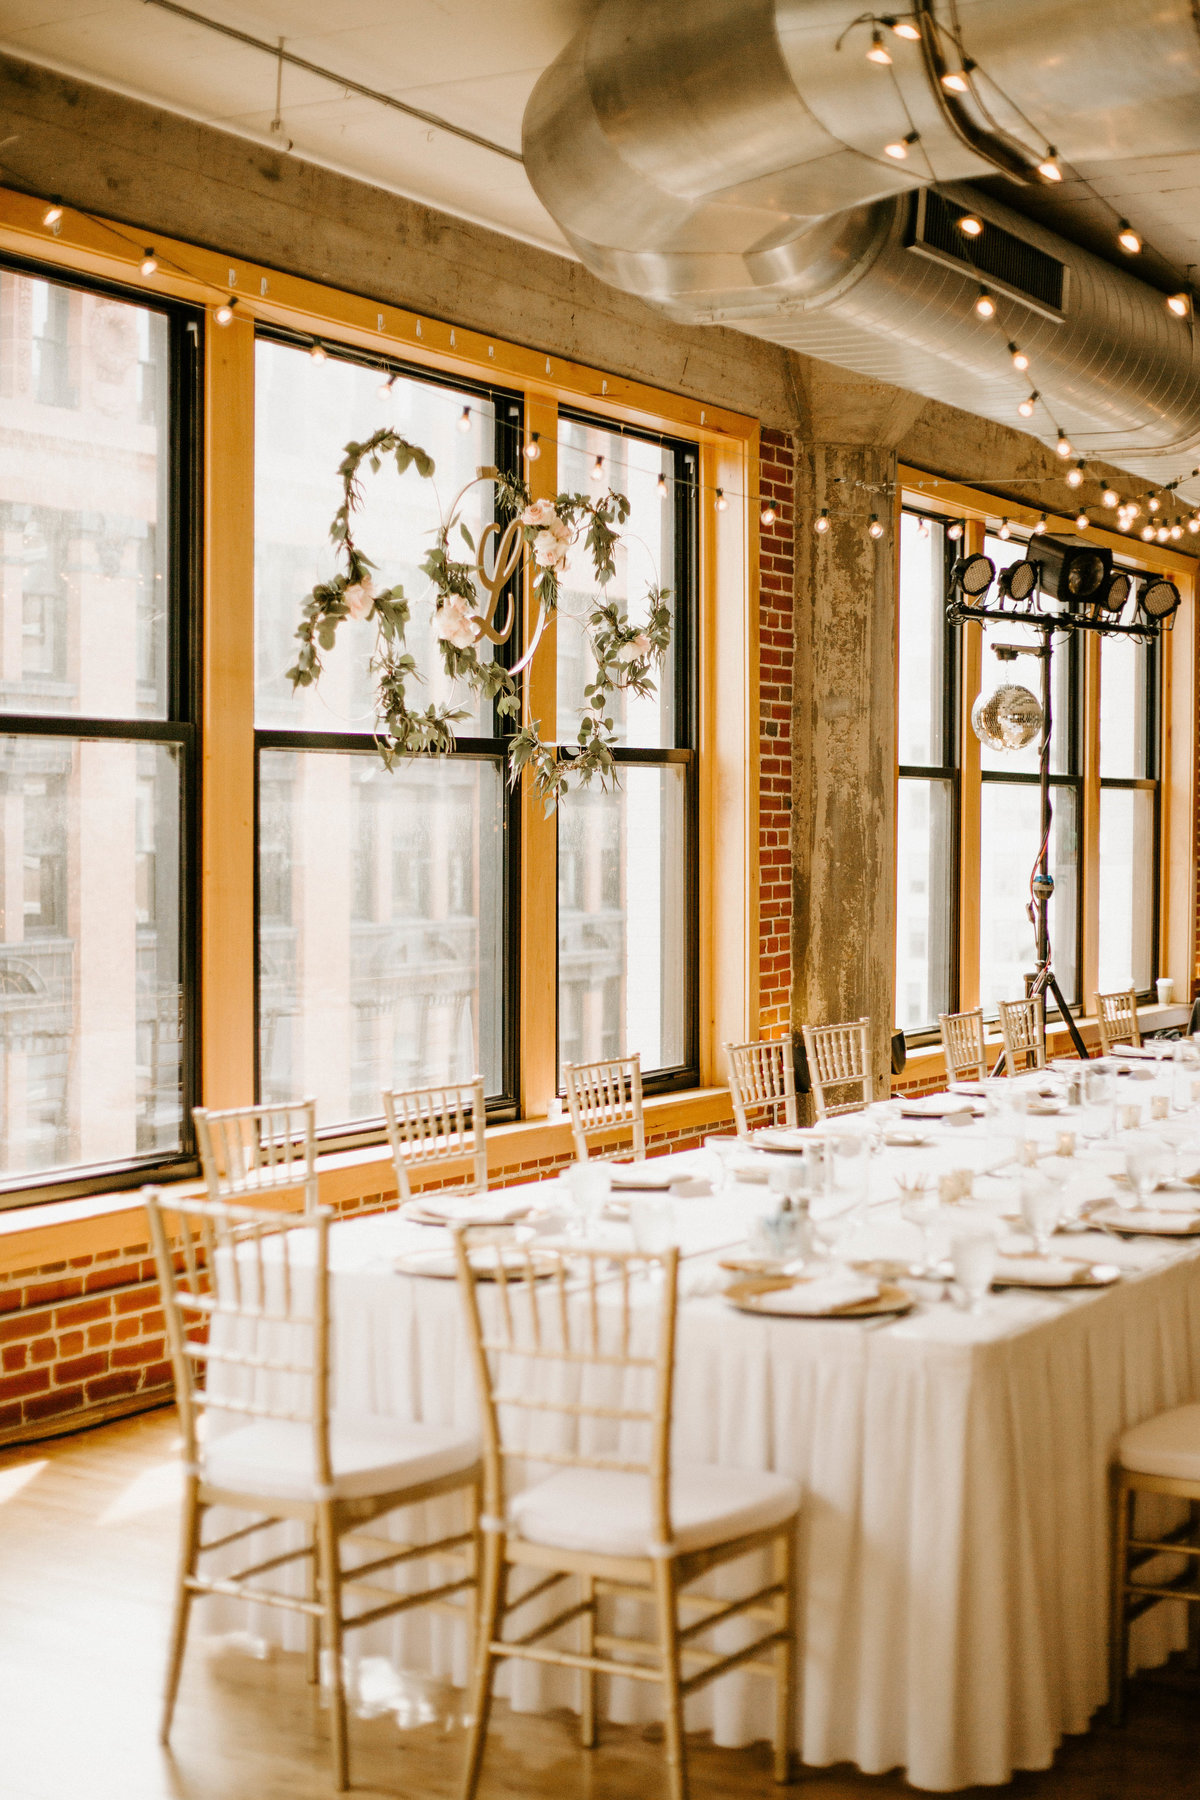 Windows on Washington Wedding  Abby + Steve  St. Louis  St. Louis Wedding Photographer  Allison Slater Photography833